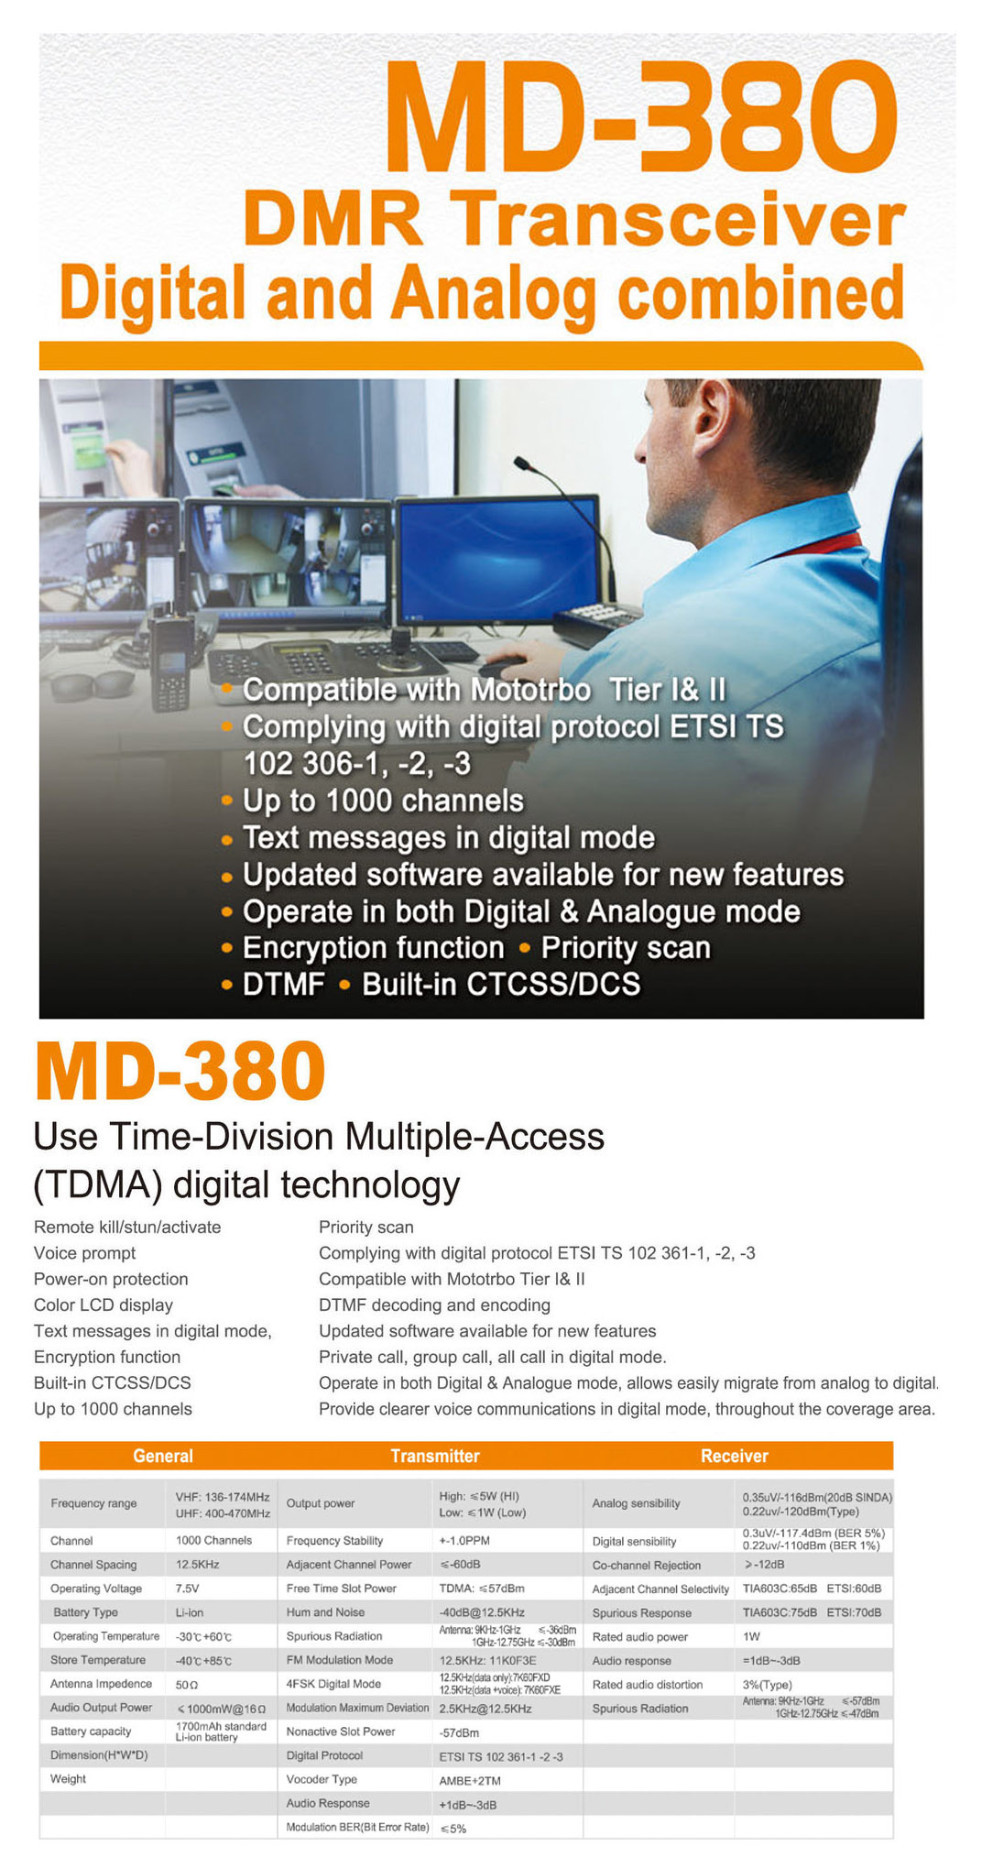 MD380 DMR compatiable with MOTOROLA